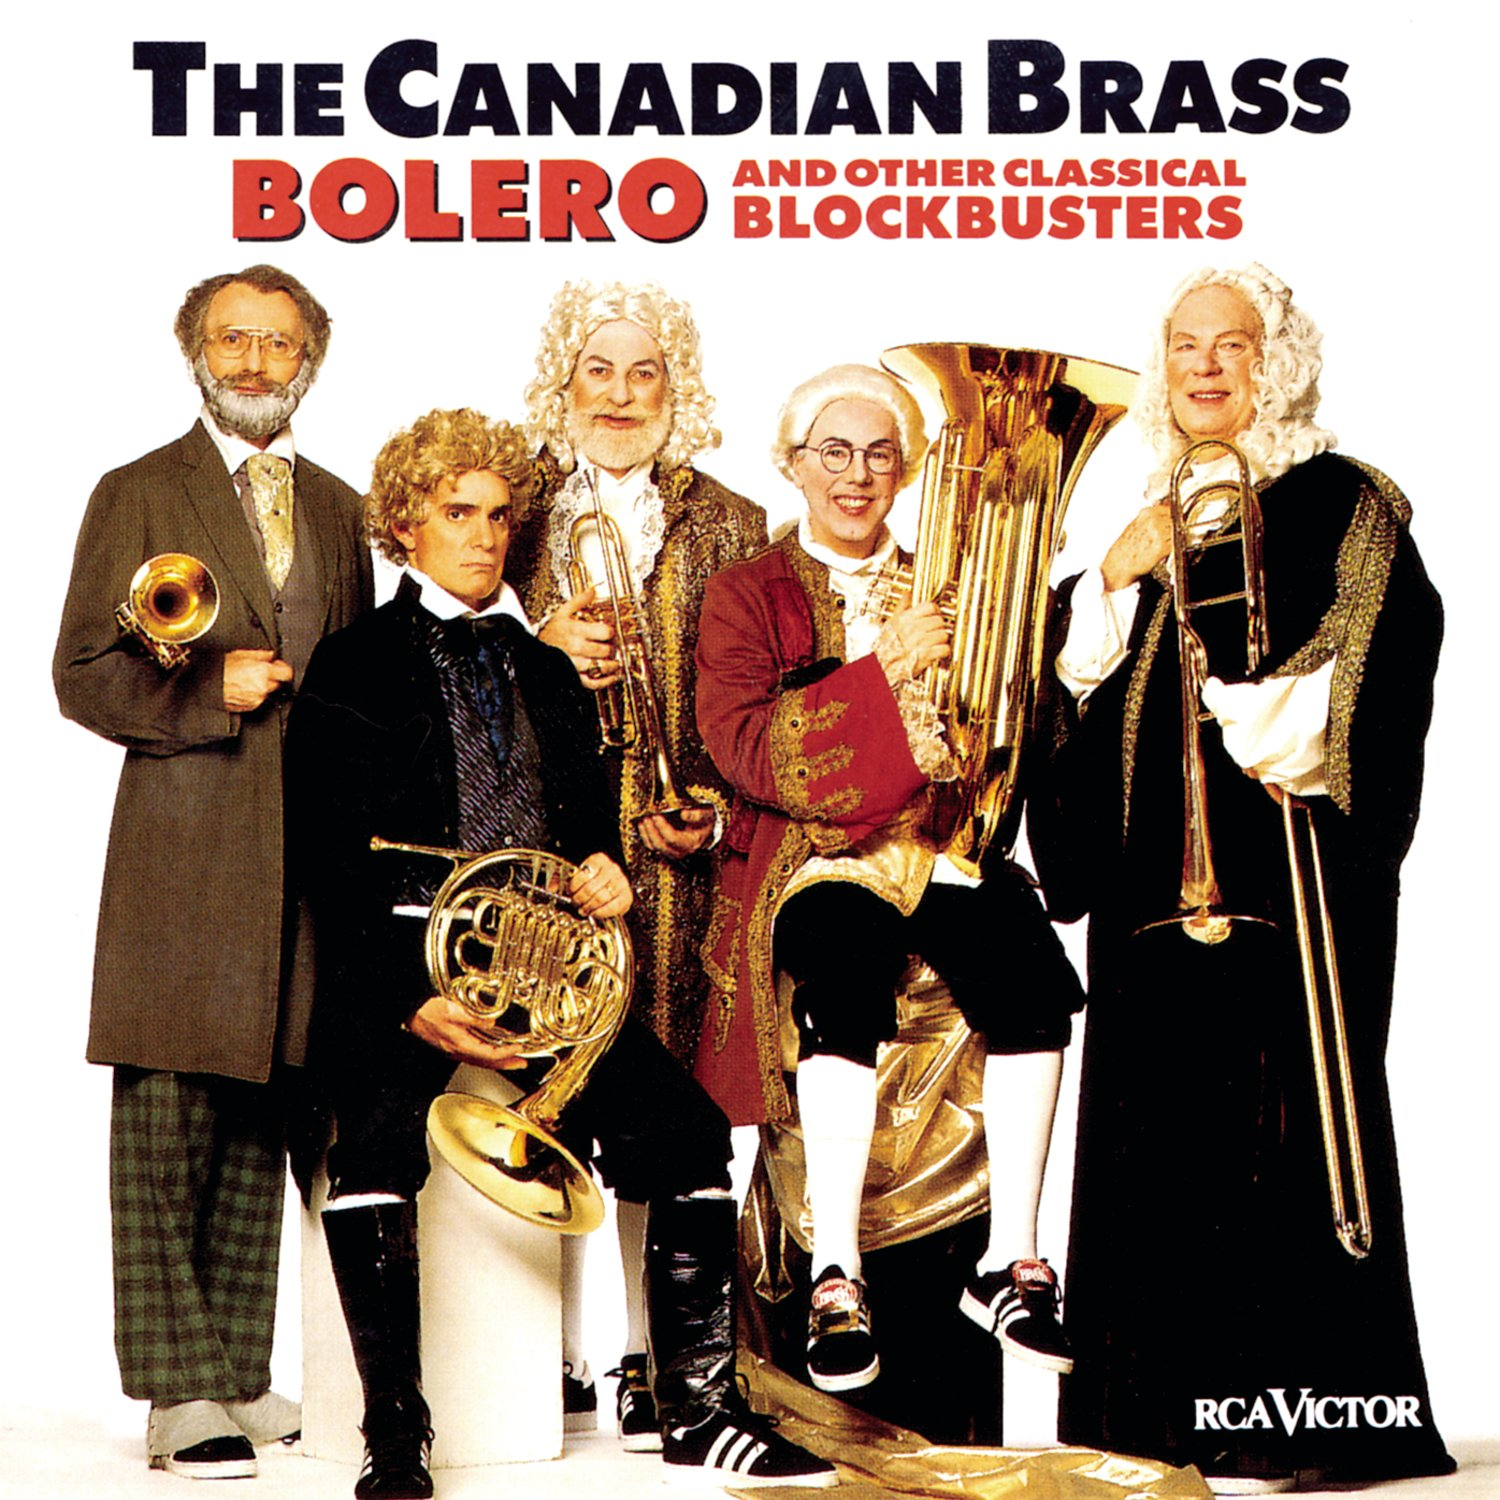 Bolero & Other Classical Blockbusters by CANADIAN BRASS